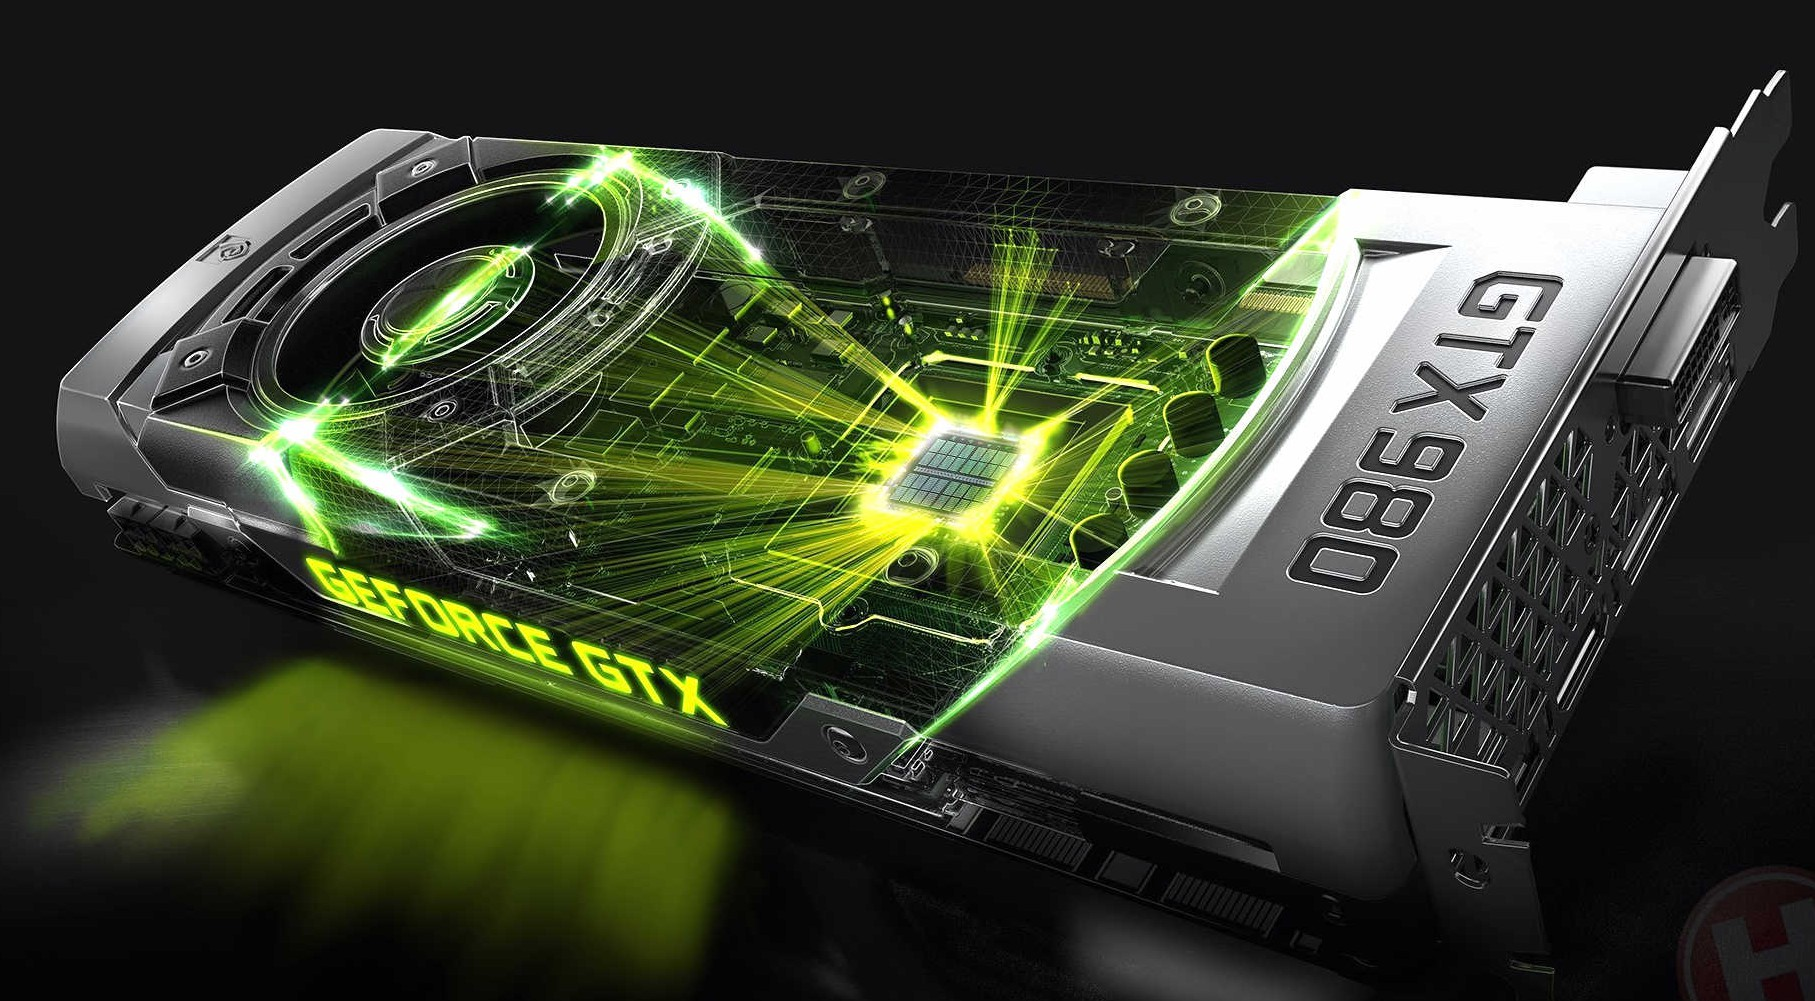 nvidia geforce gtx 950 review